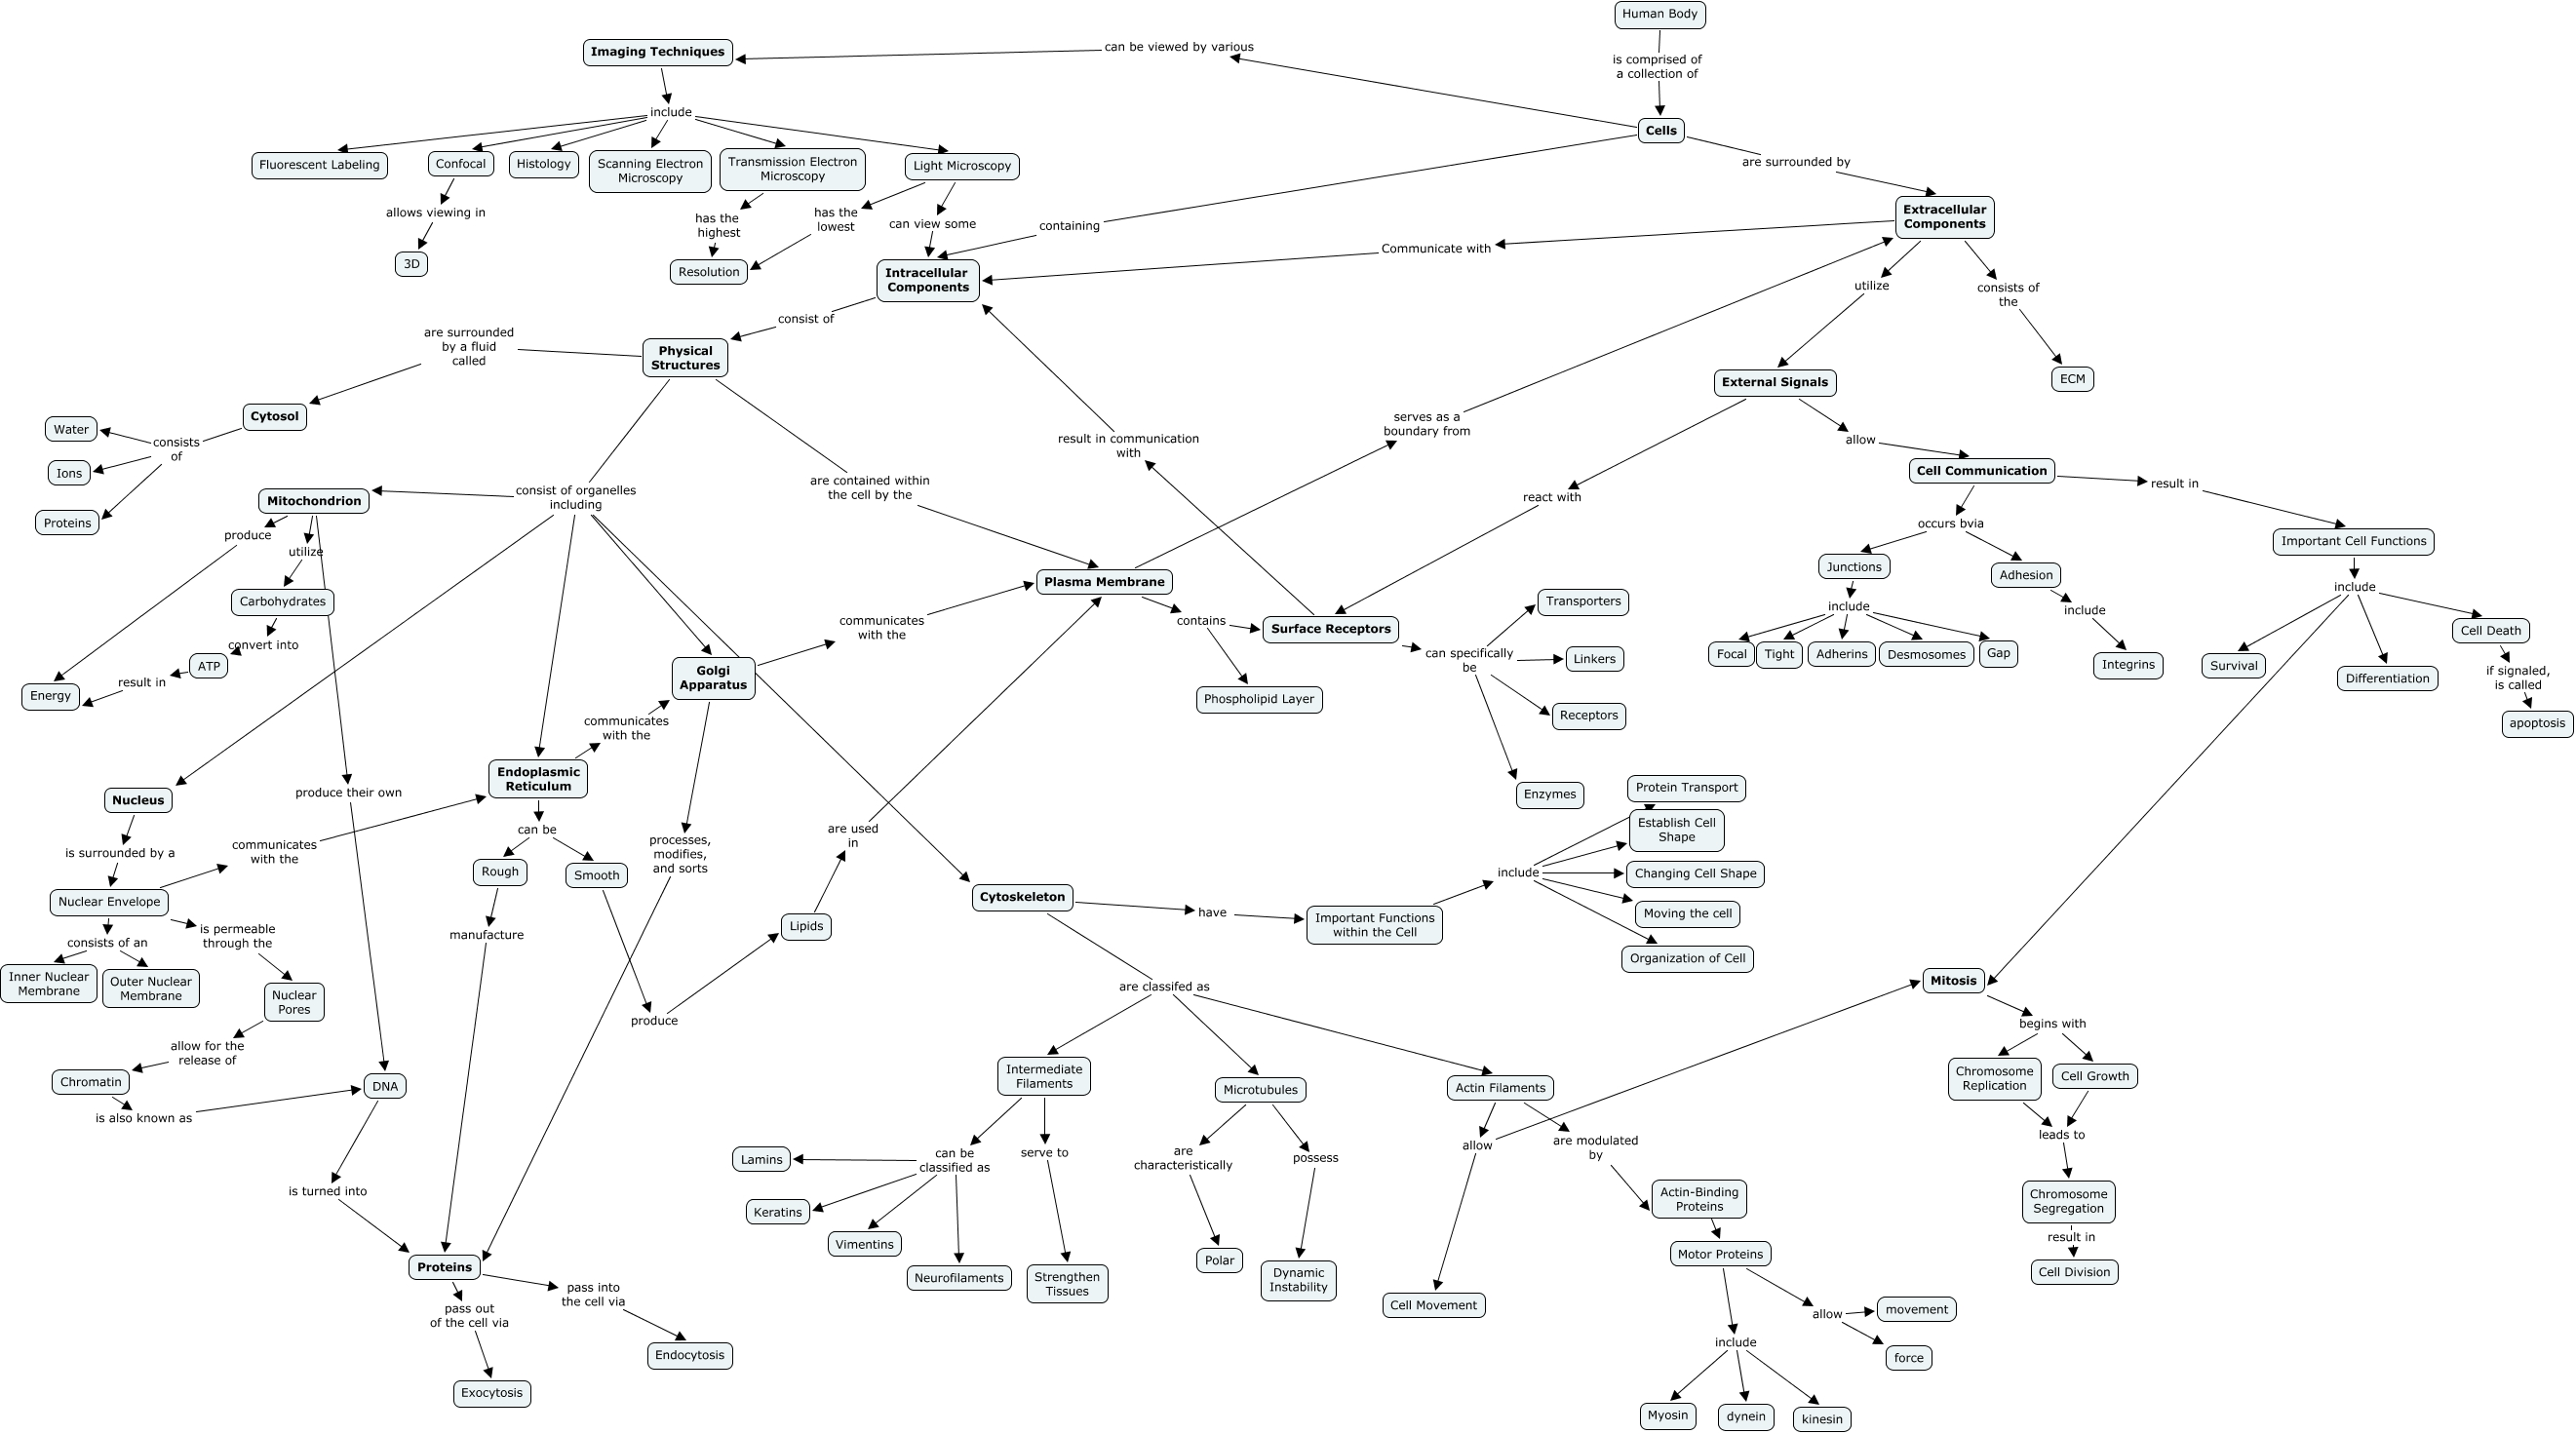 1 ECM Concept Map   What is the major structure and function of